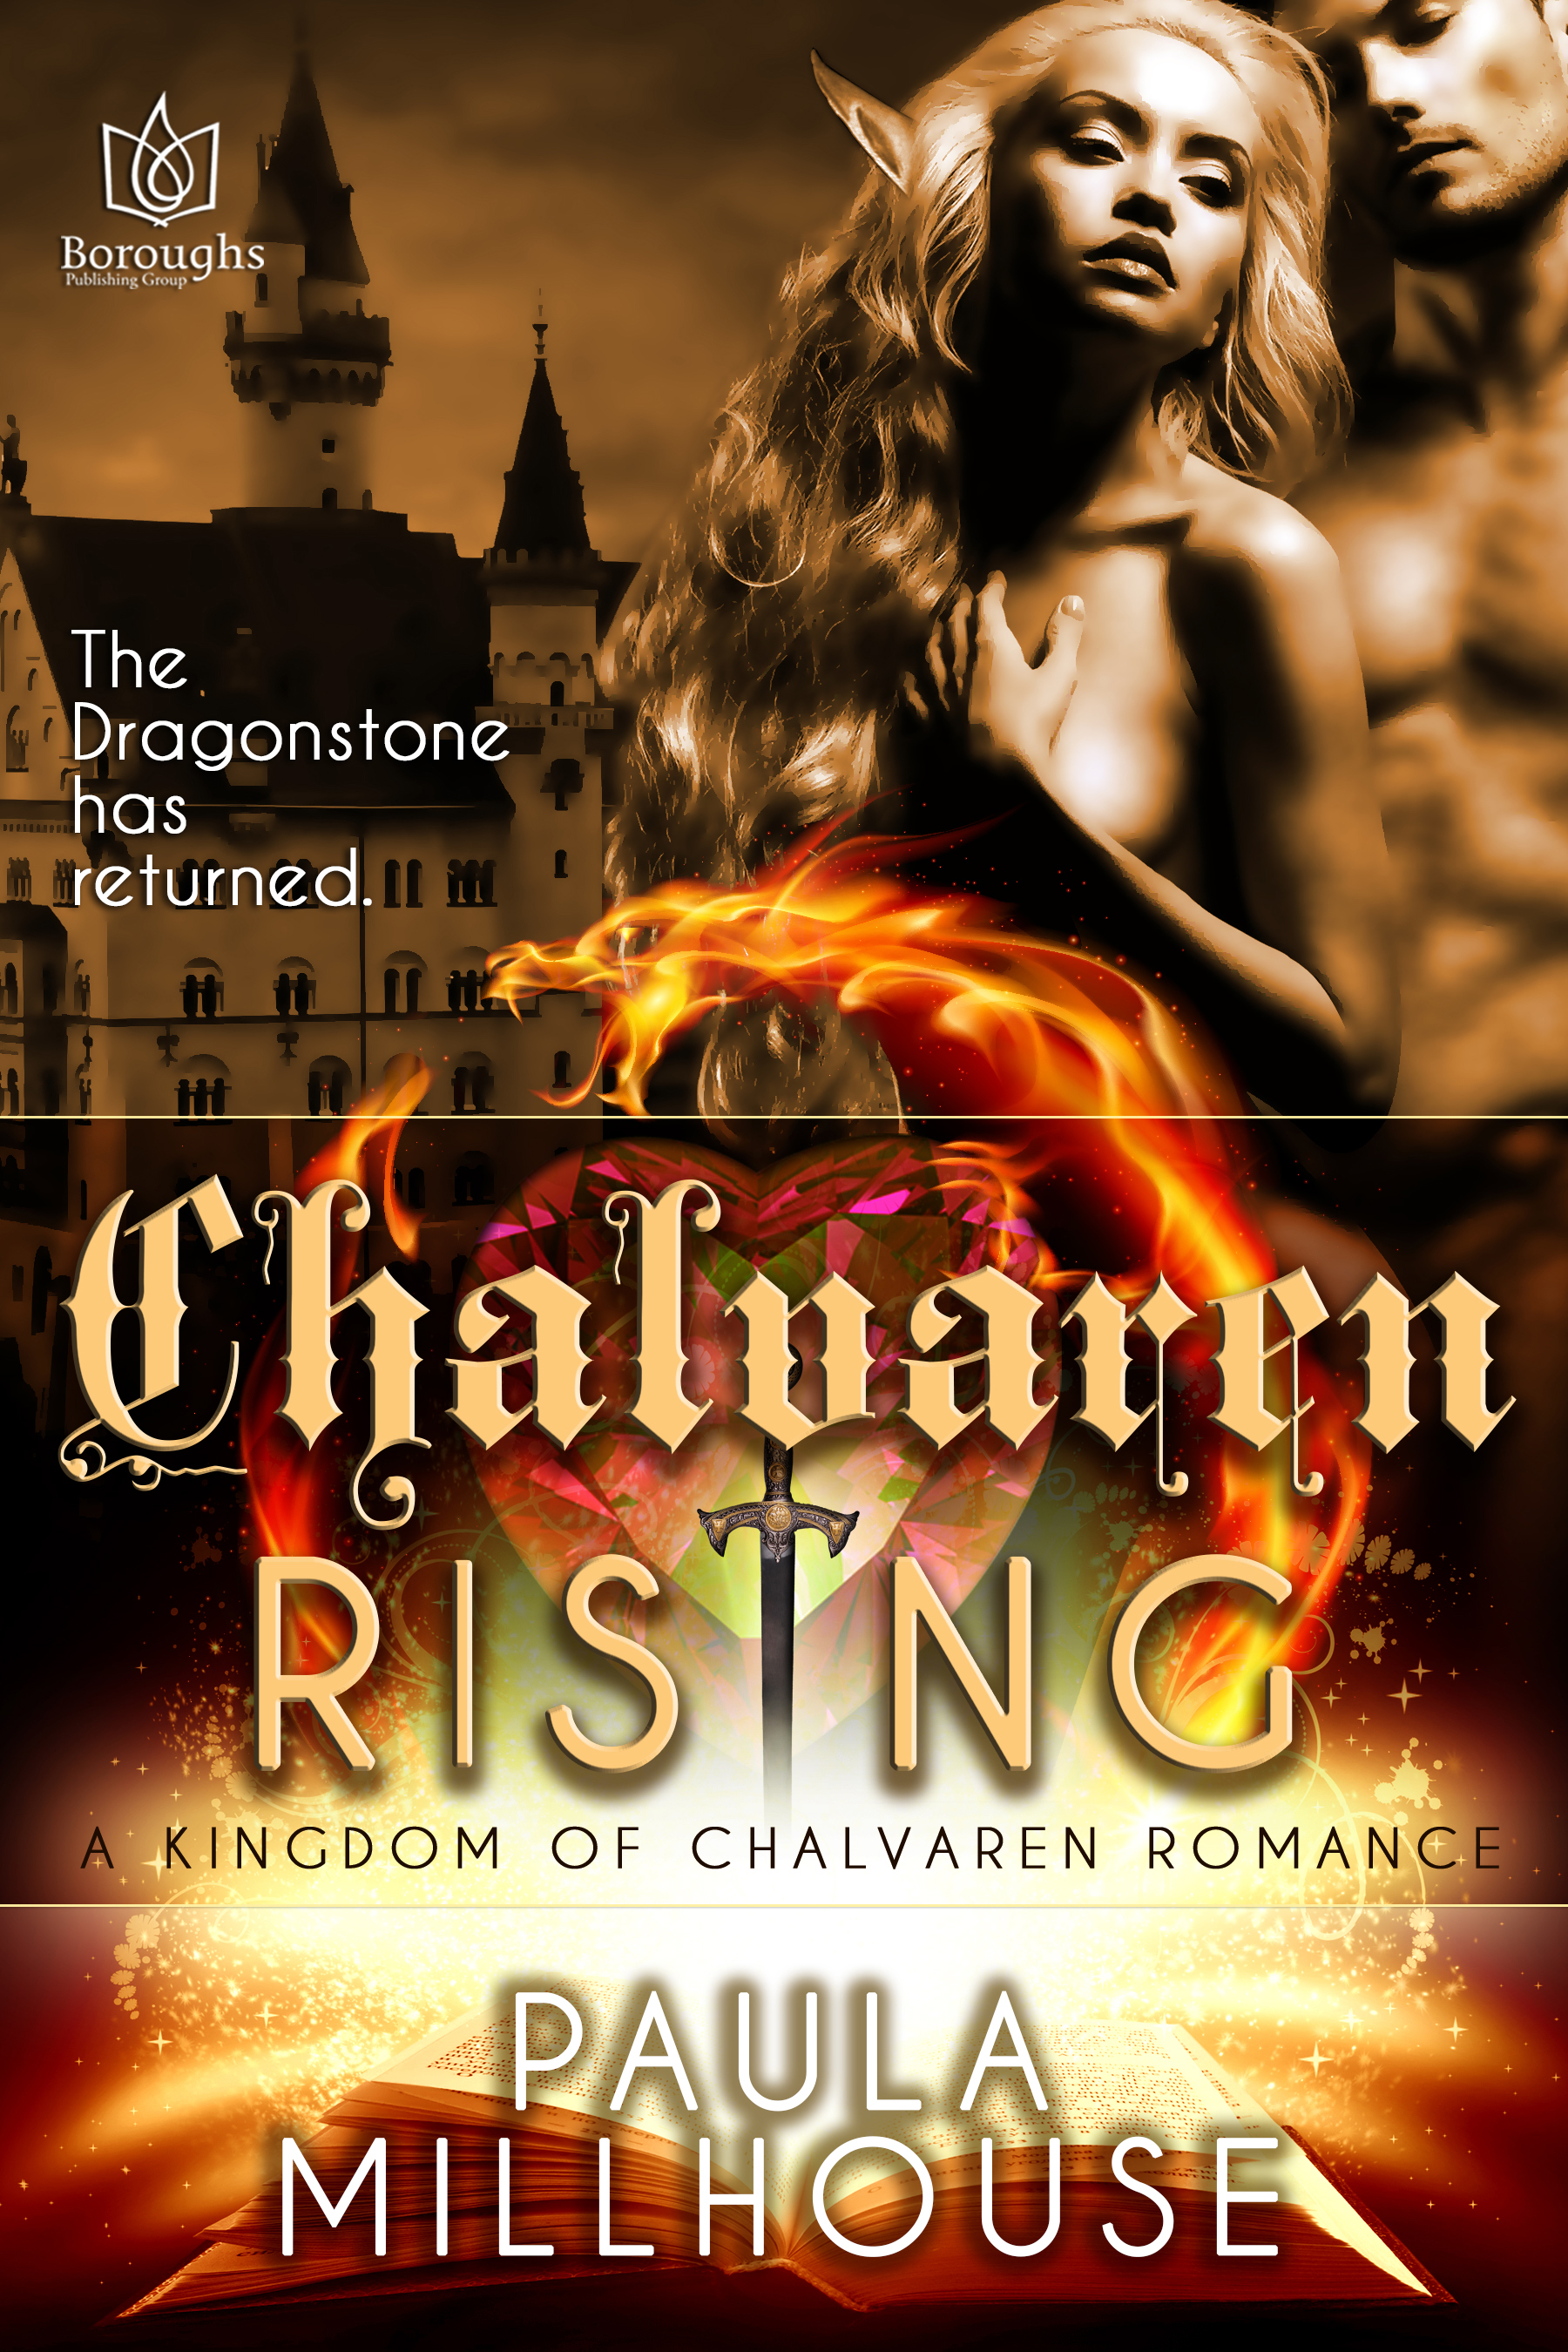 Dragons, elf, nobility, female protagonist, Kingdom of Chalvaren, Fantasy, Romance, Love, Paula Millhouse, Boroughs Publishing Group, Magic, Wizard, Witch, Family